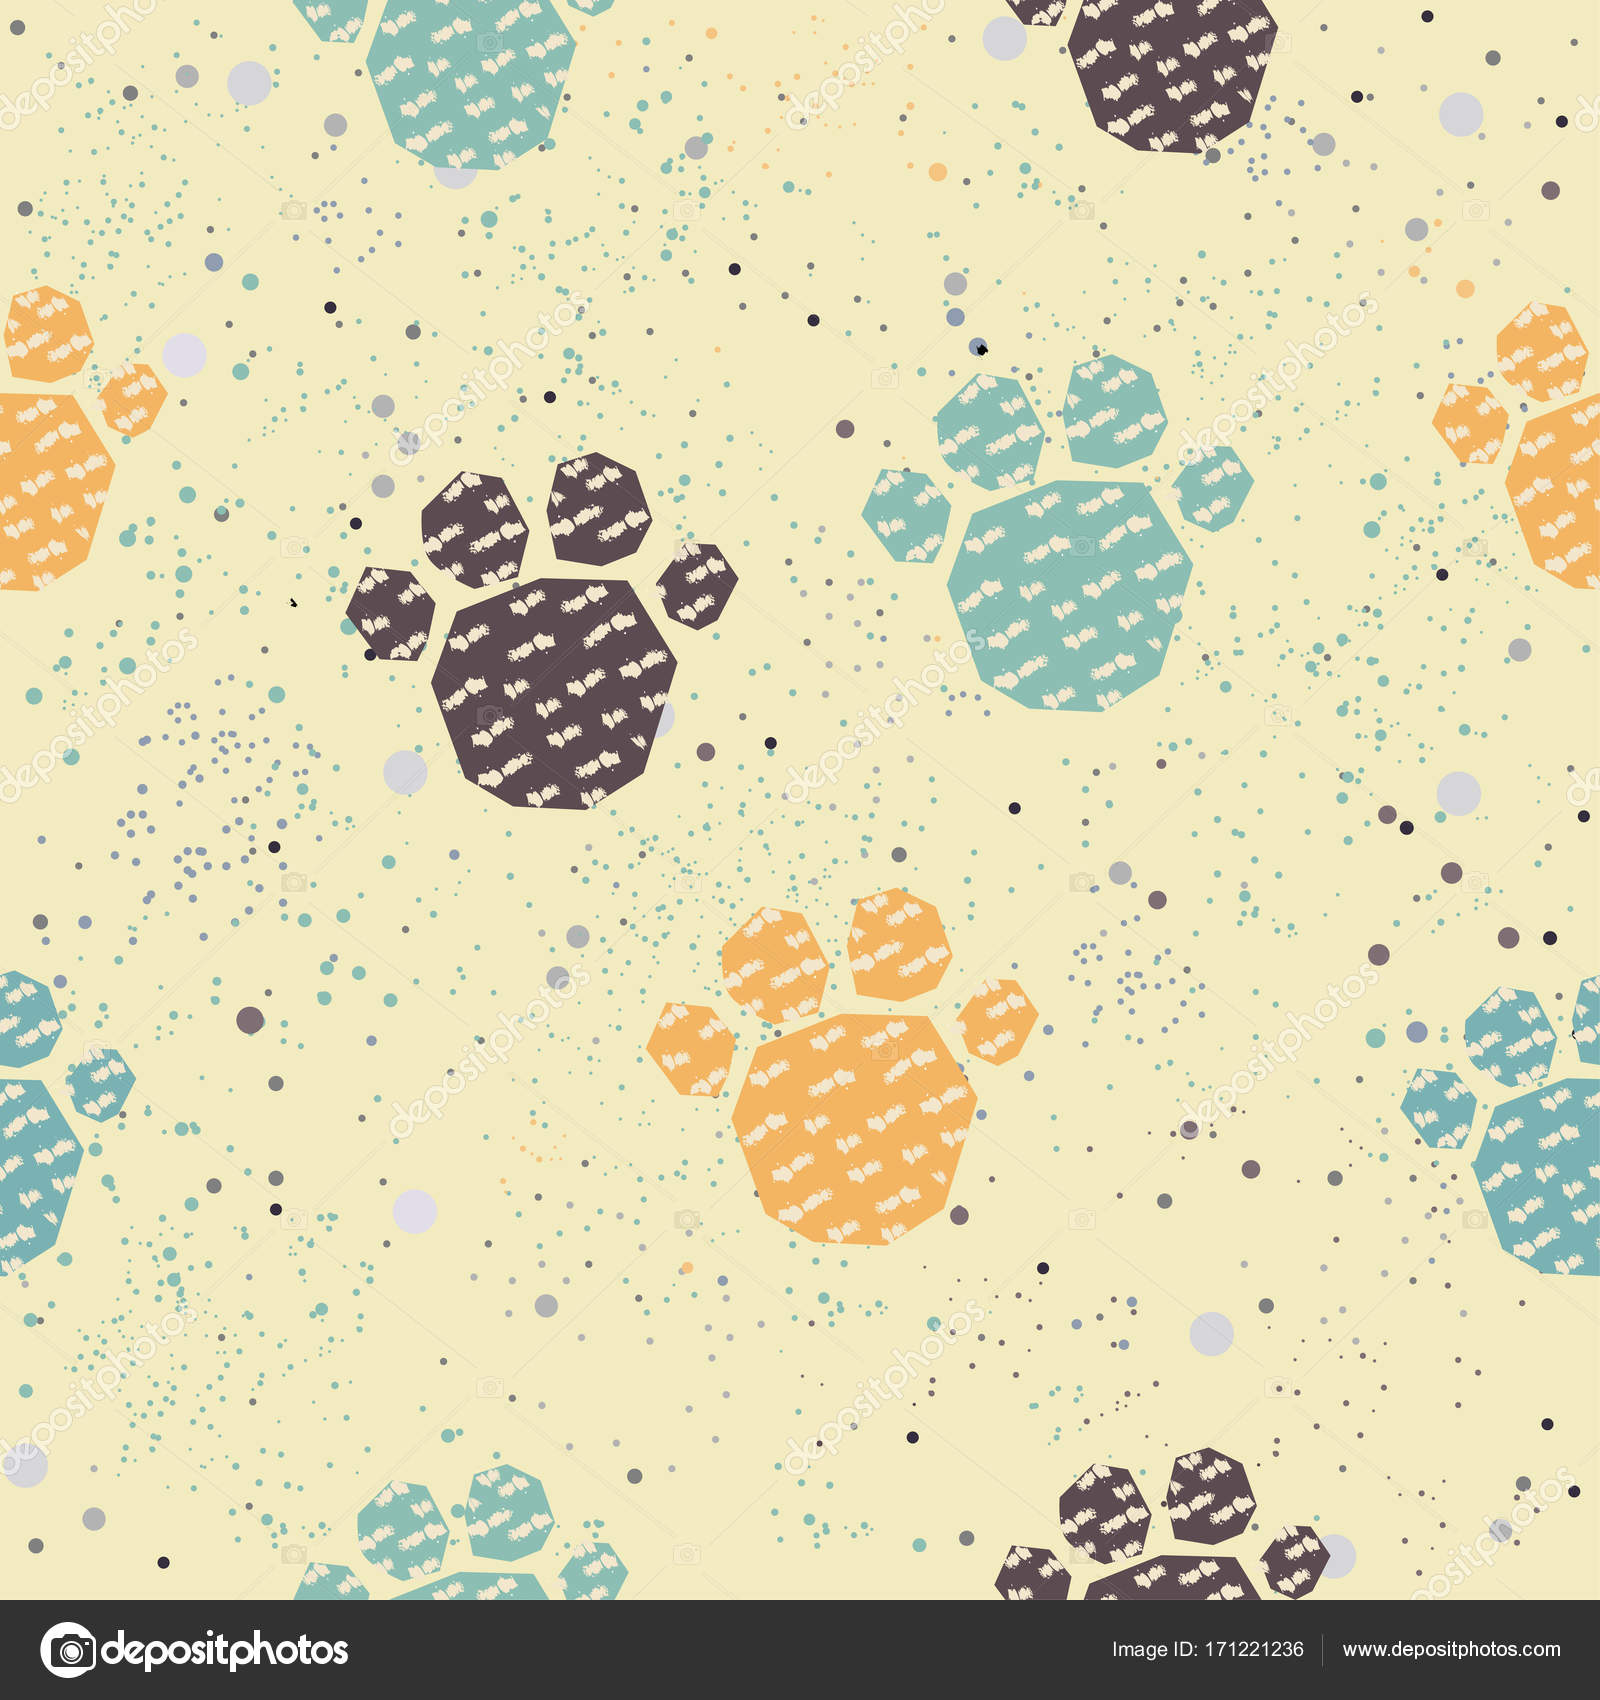 Cute Pattern with colorful dog paws on beige background with tiny ...